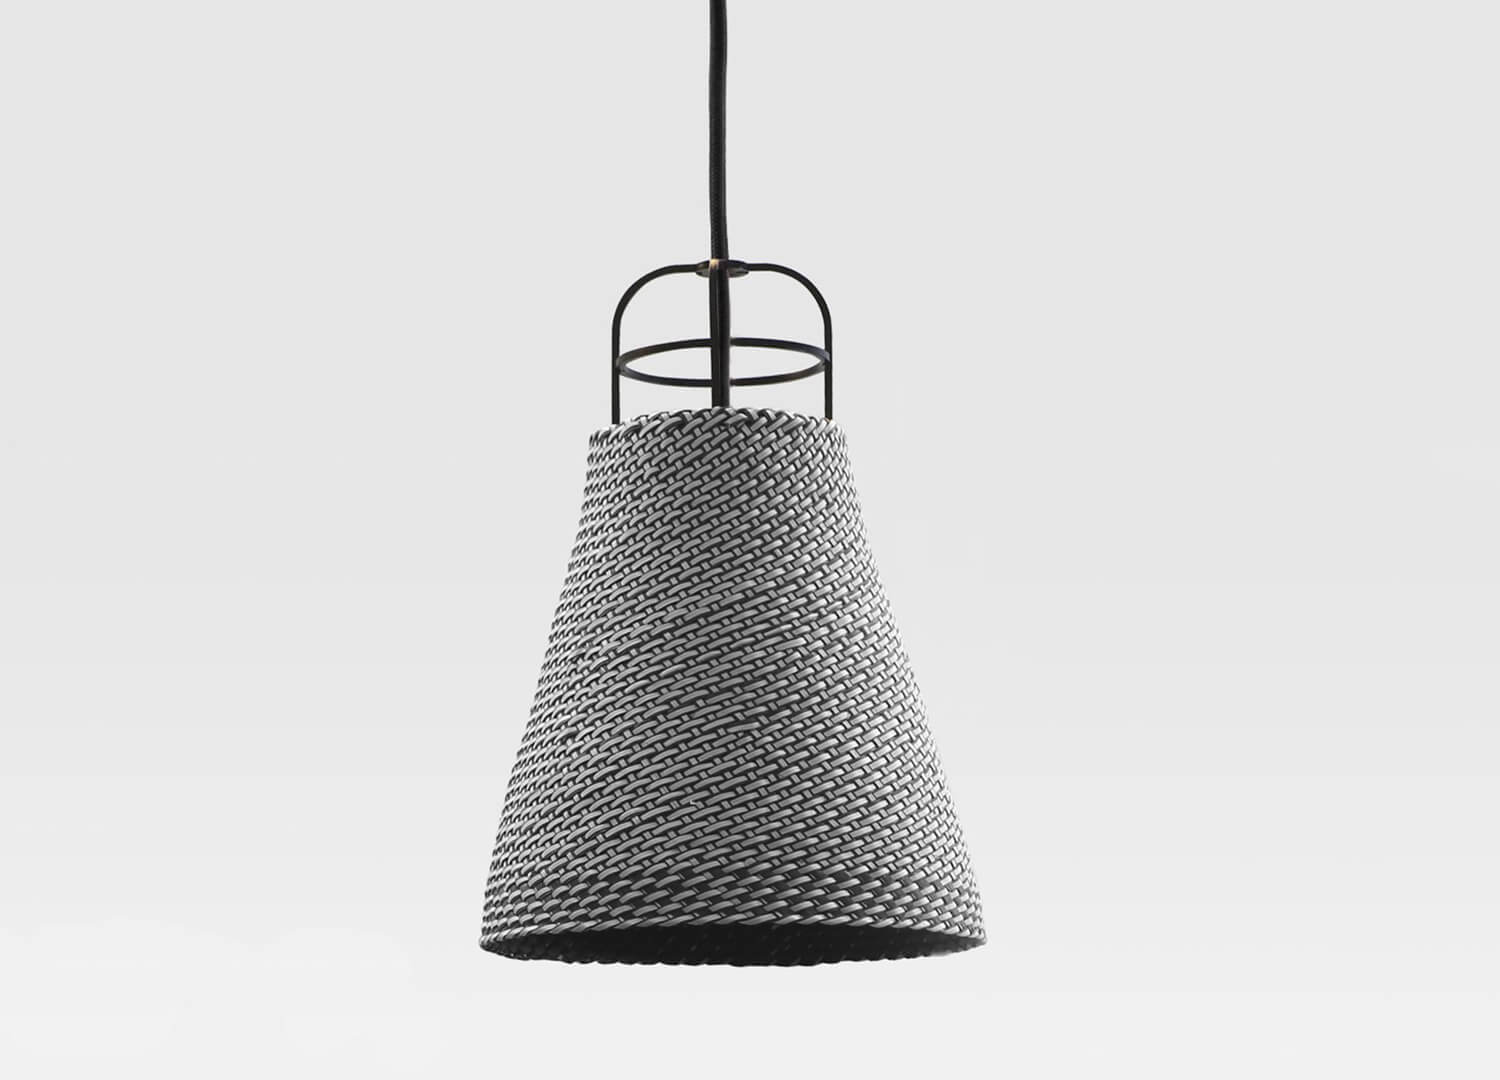 est living wickedly wickered sarn pendant lamp